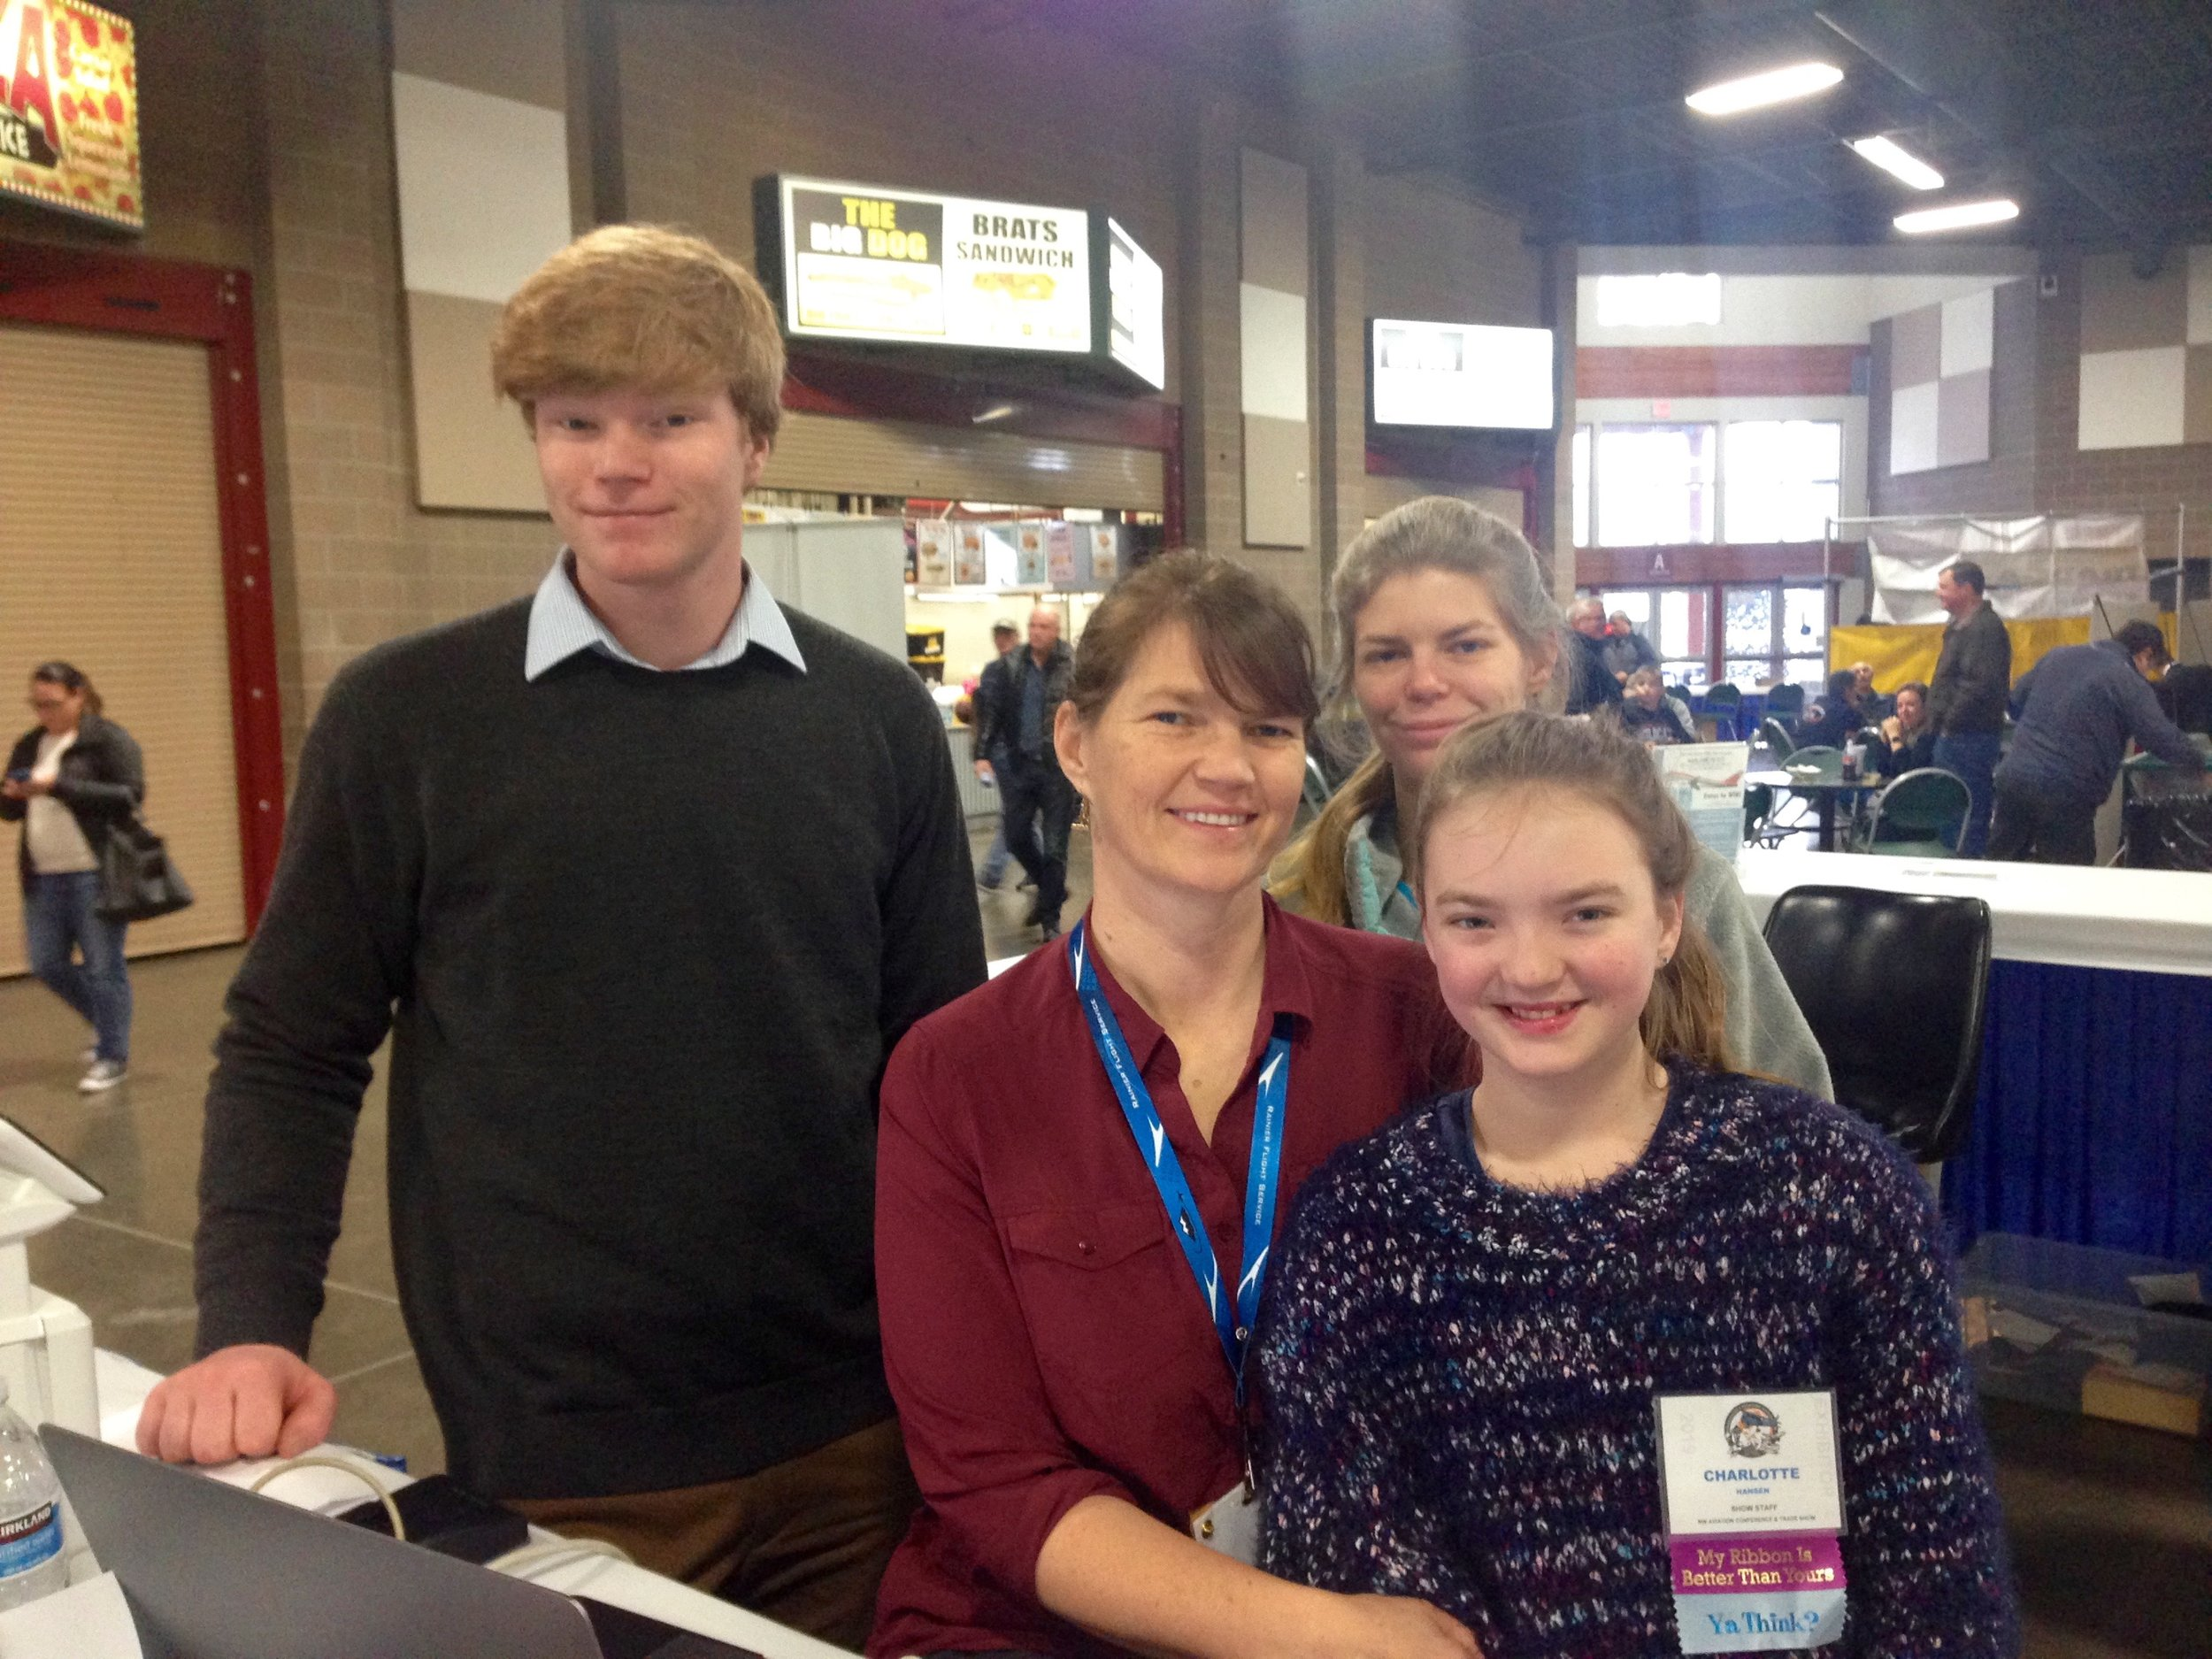 Rachel Hansen and her family. Rachel is Washington Aviation Association's NW Aviation Conference and Career Forum Trade Show Coordinator. Everyone worked diligently to make this event a great and very well attended event this year.